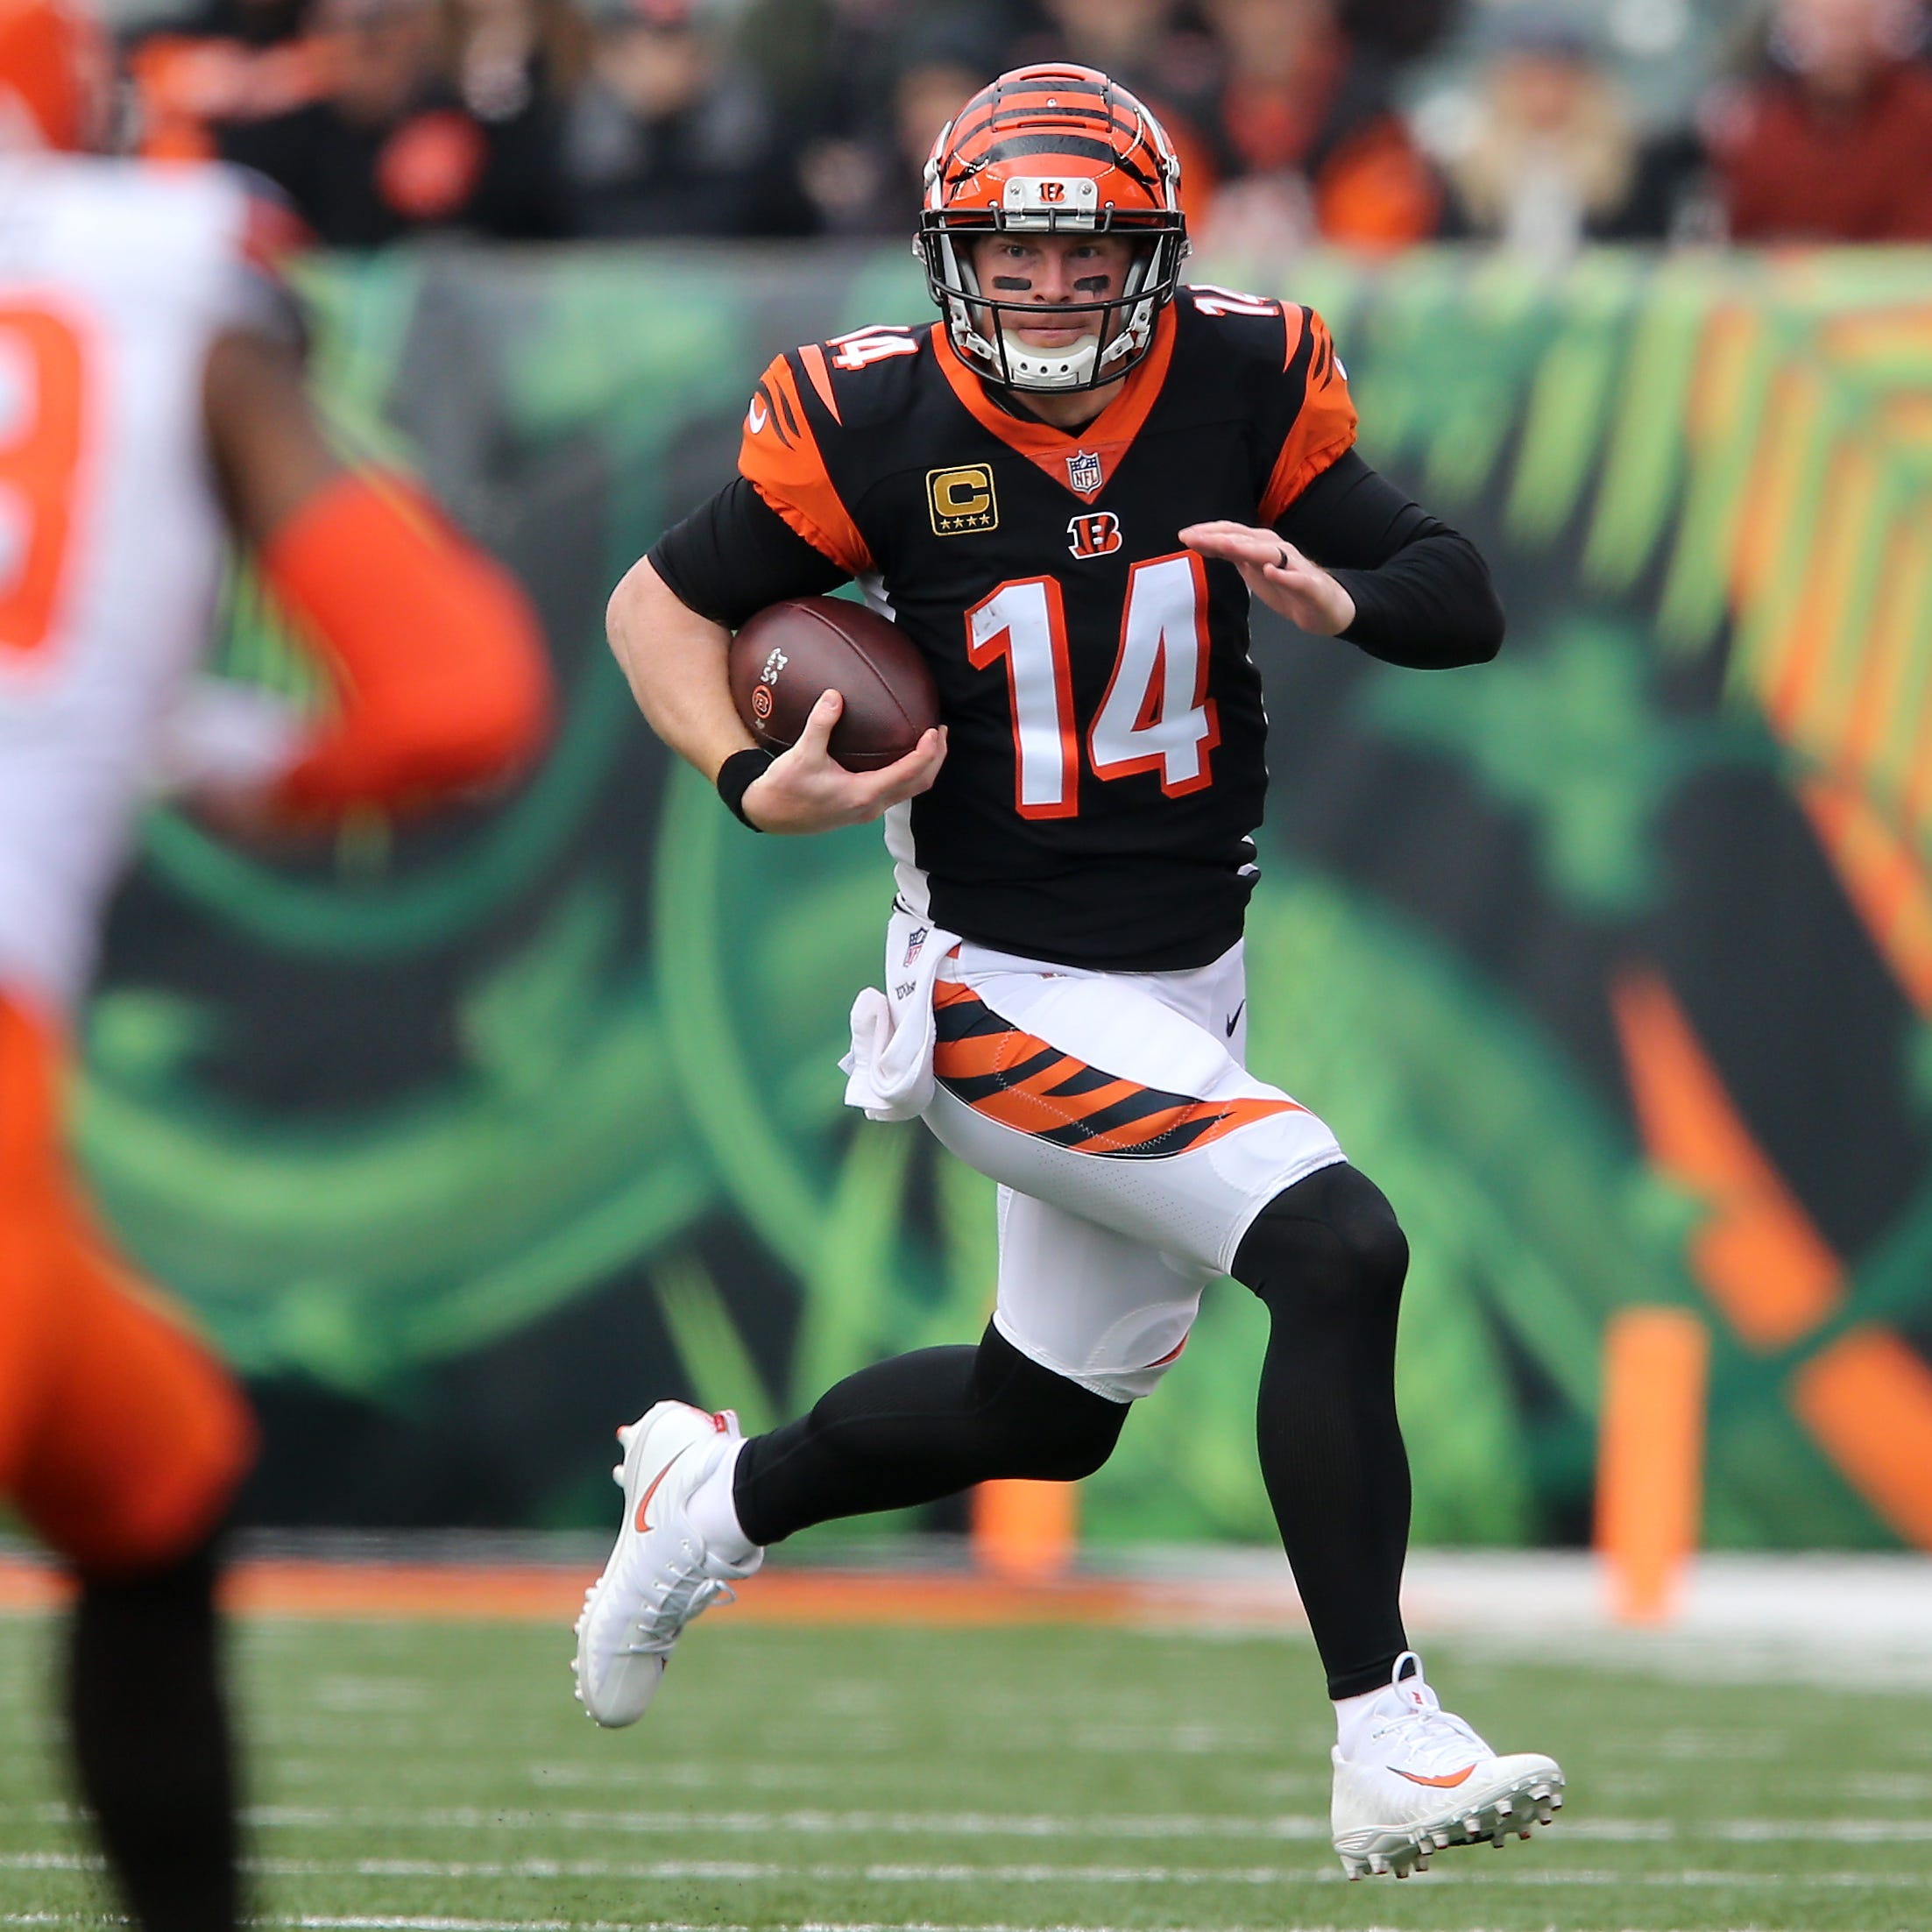 Analysis: Cincinnati Bengals back Andy Dalton, but nothing is definitive at quarterback